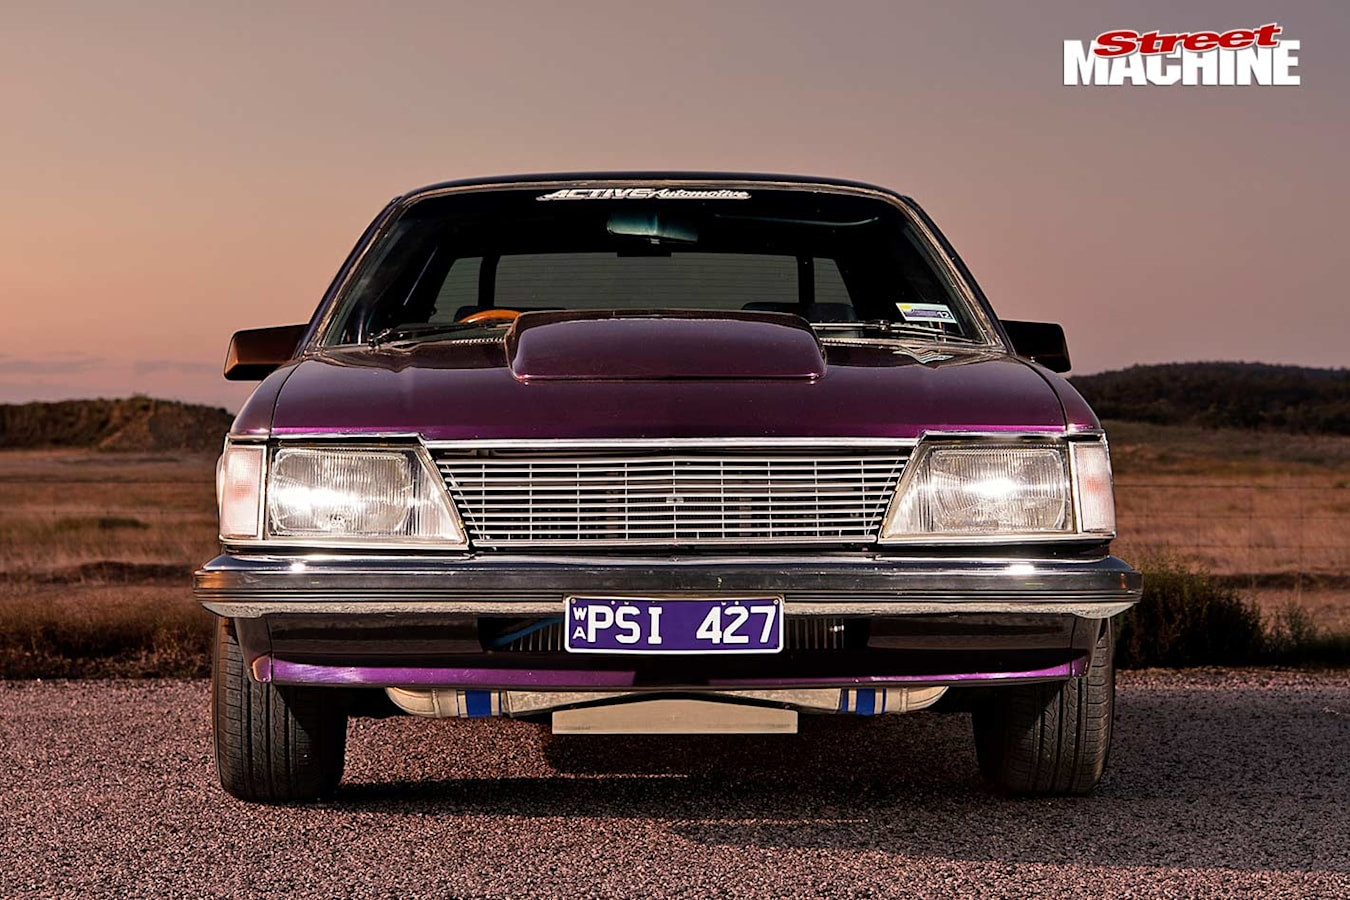 Holden Commodore front